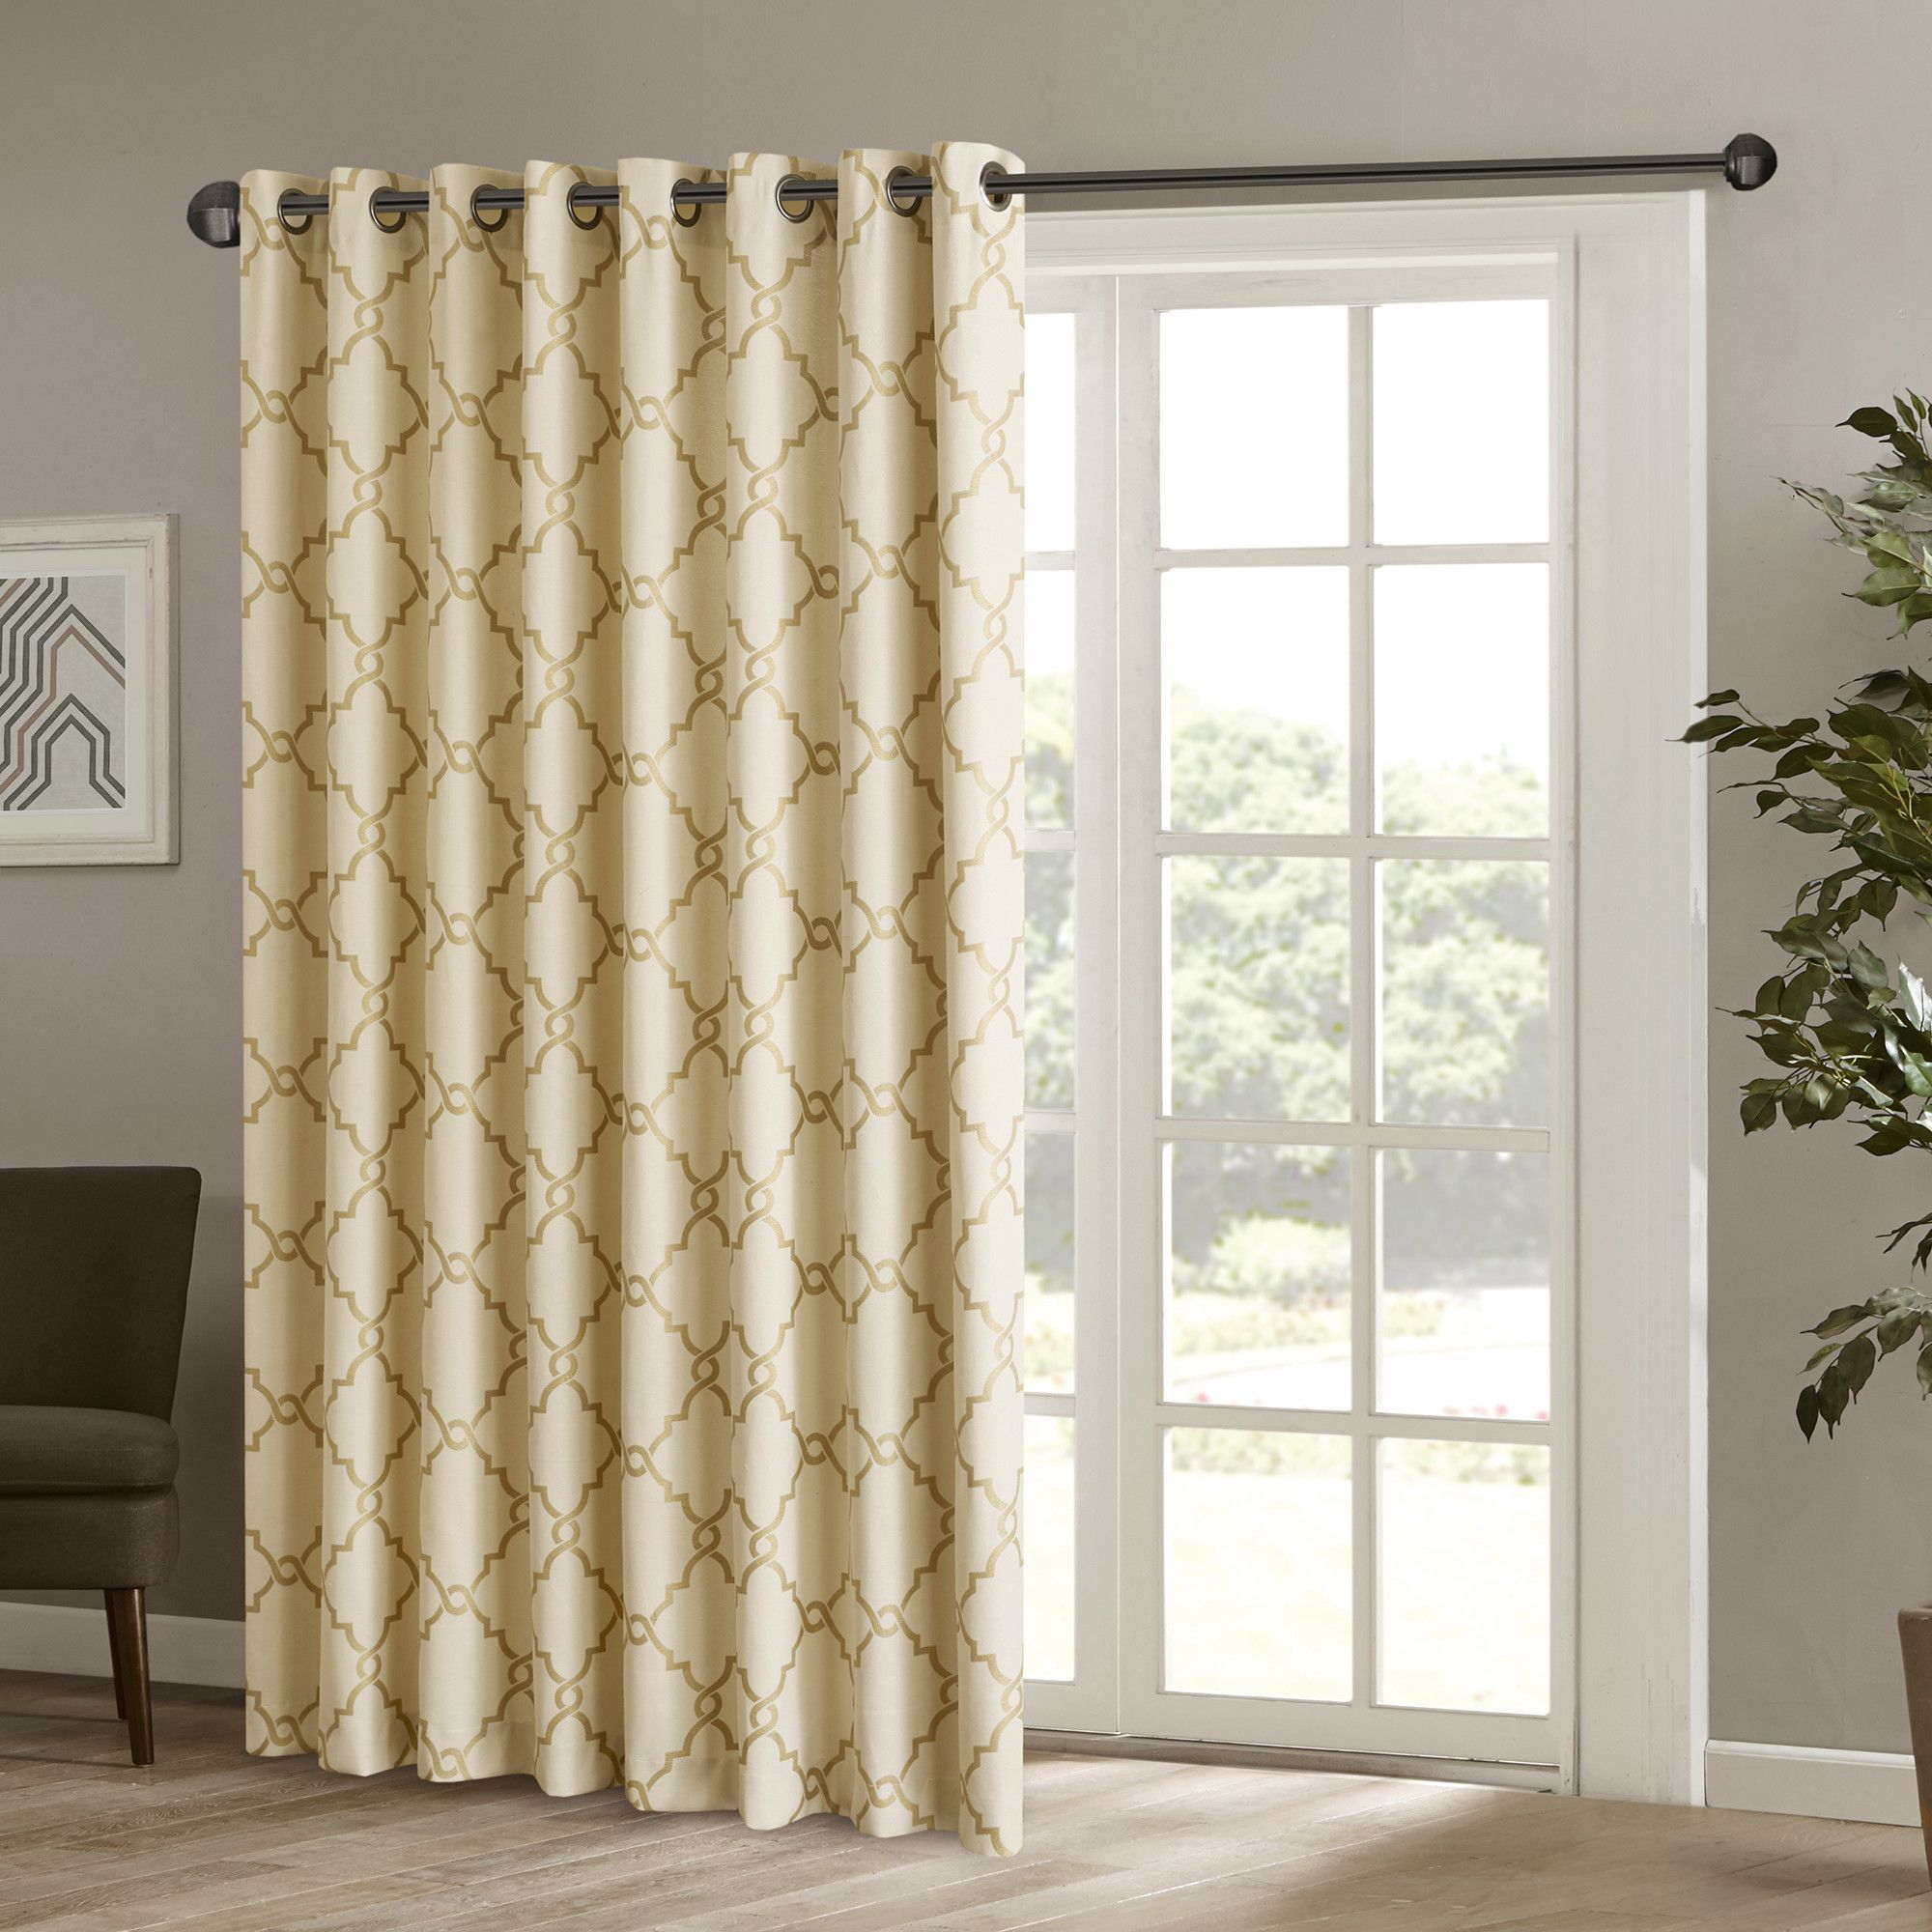 see curtains white curtain aspen drapes through sheer panel ikea and